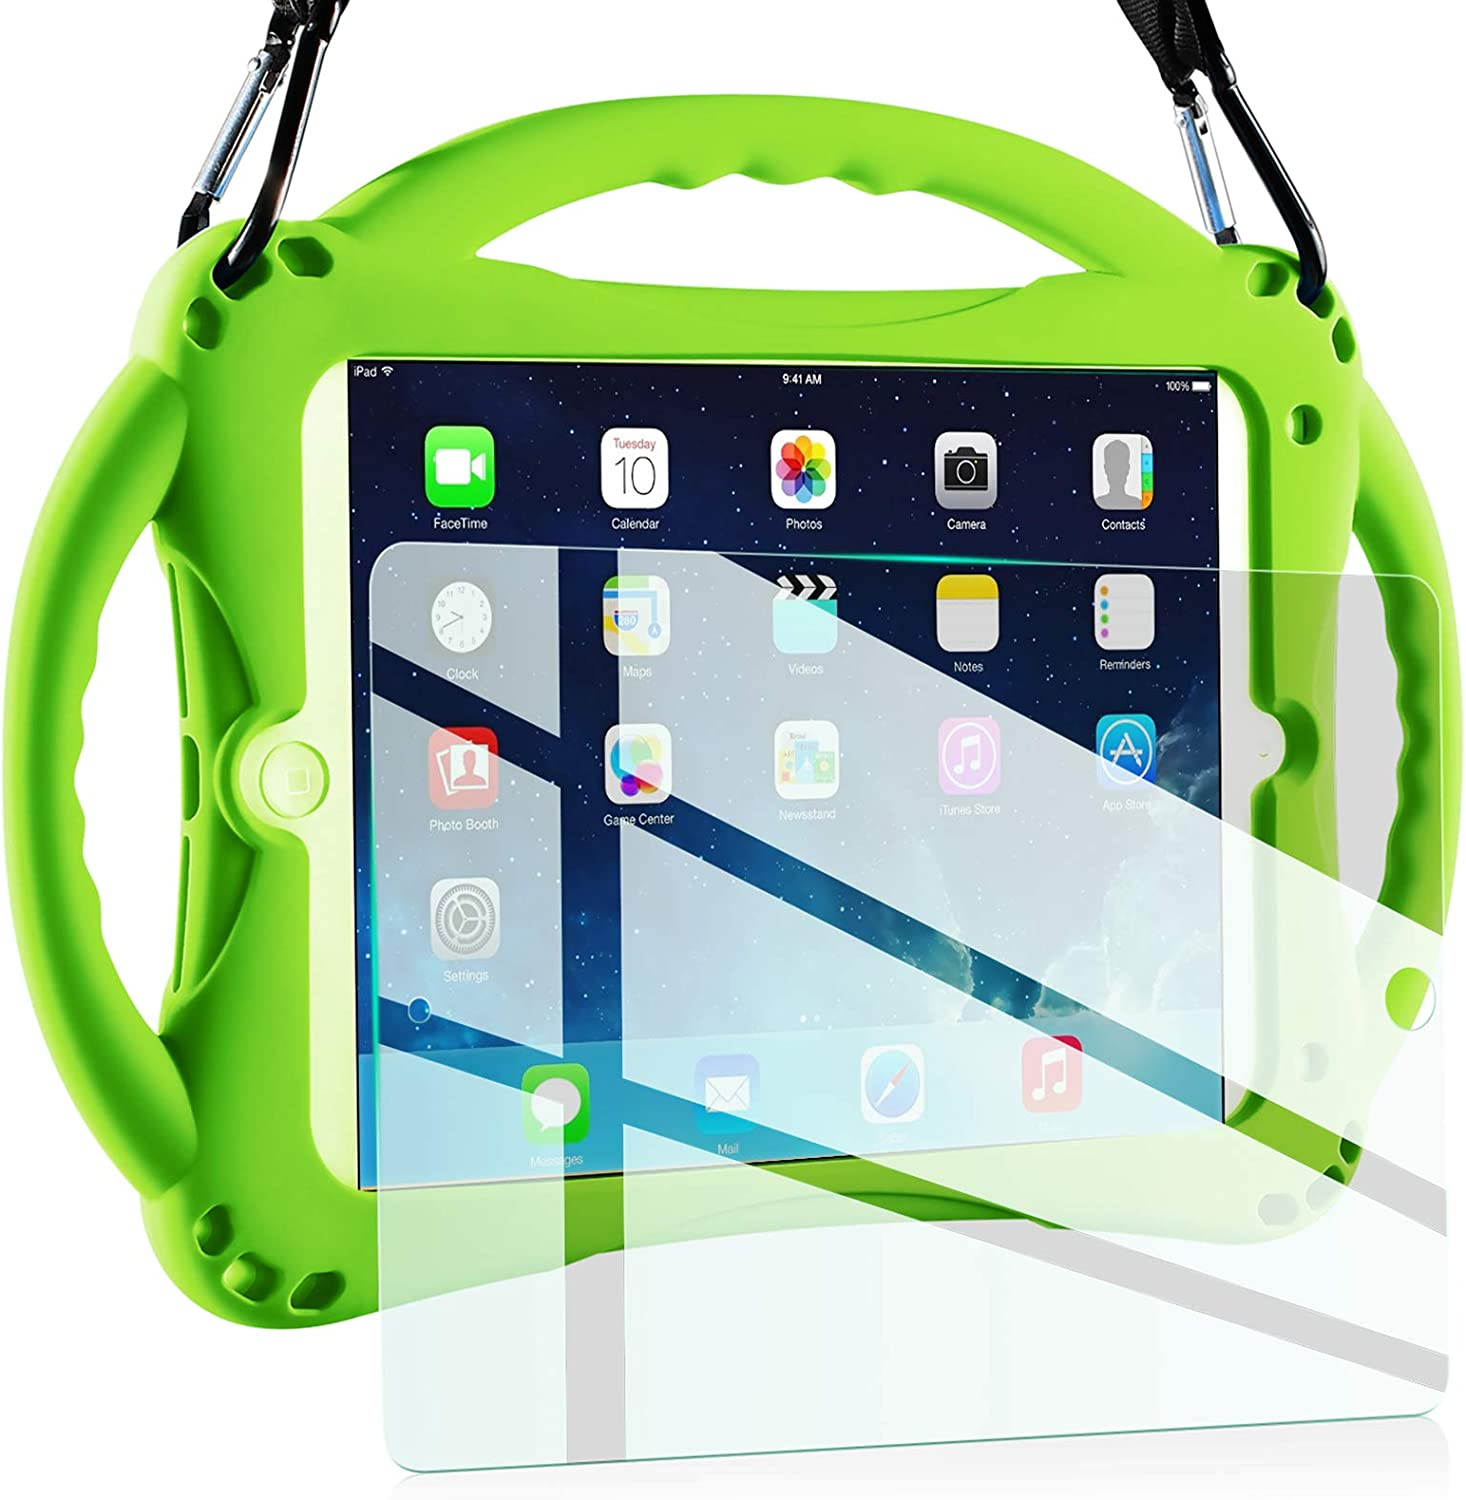 TopEsct Kids Case for New iPad 2017/2018 9.7 inch Case, Shockproof Silicone Handle Stand Case Cover&(Tempered Glass Screen Protector) For Apple iPad 6th/5th Generation and iPad Air(Green)